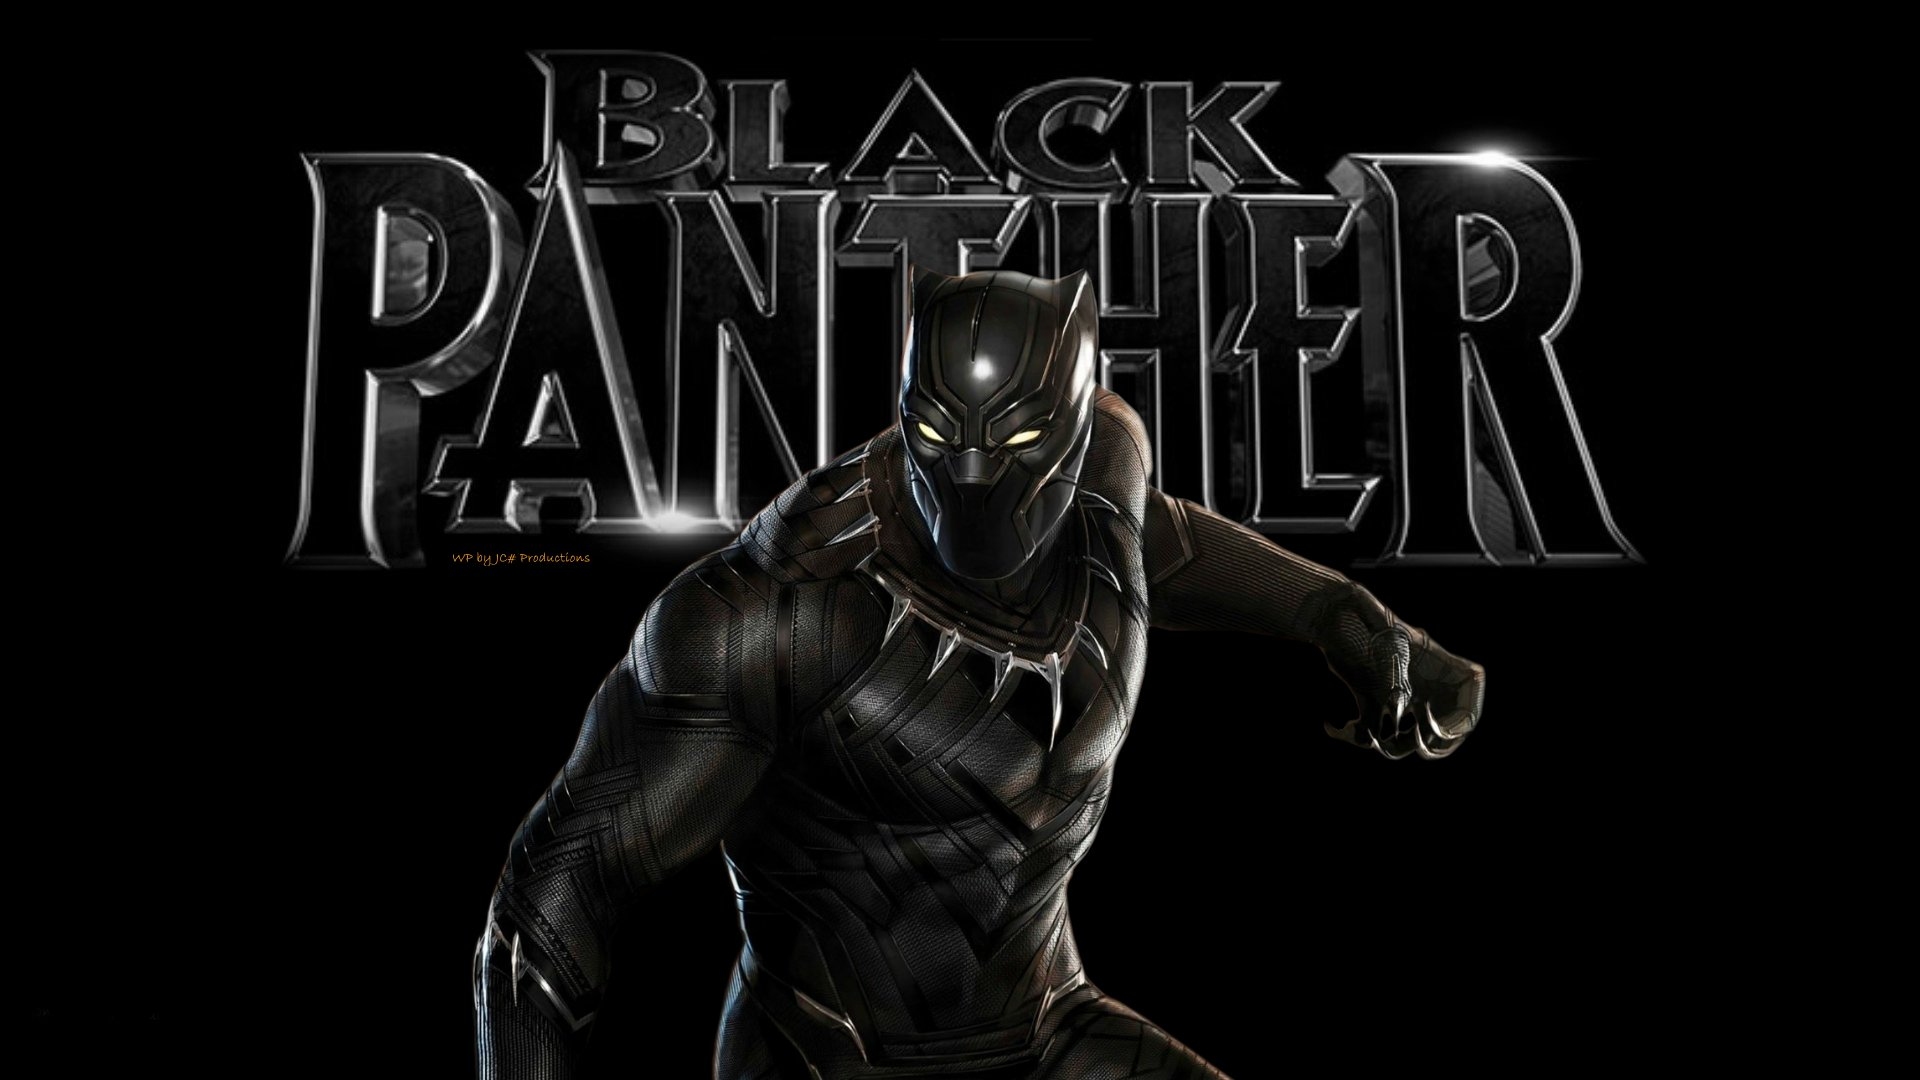 Black Panther Comic Book images Black Panther 6d HD wallpaper and background photos